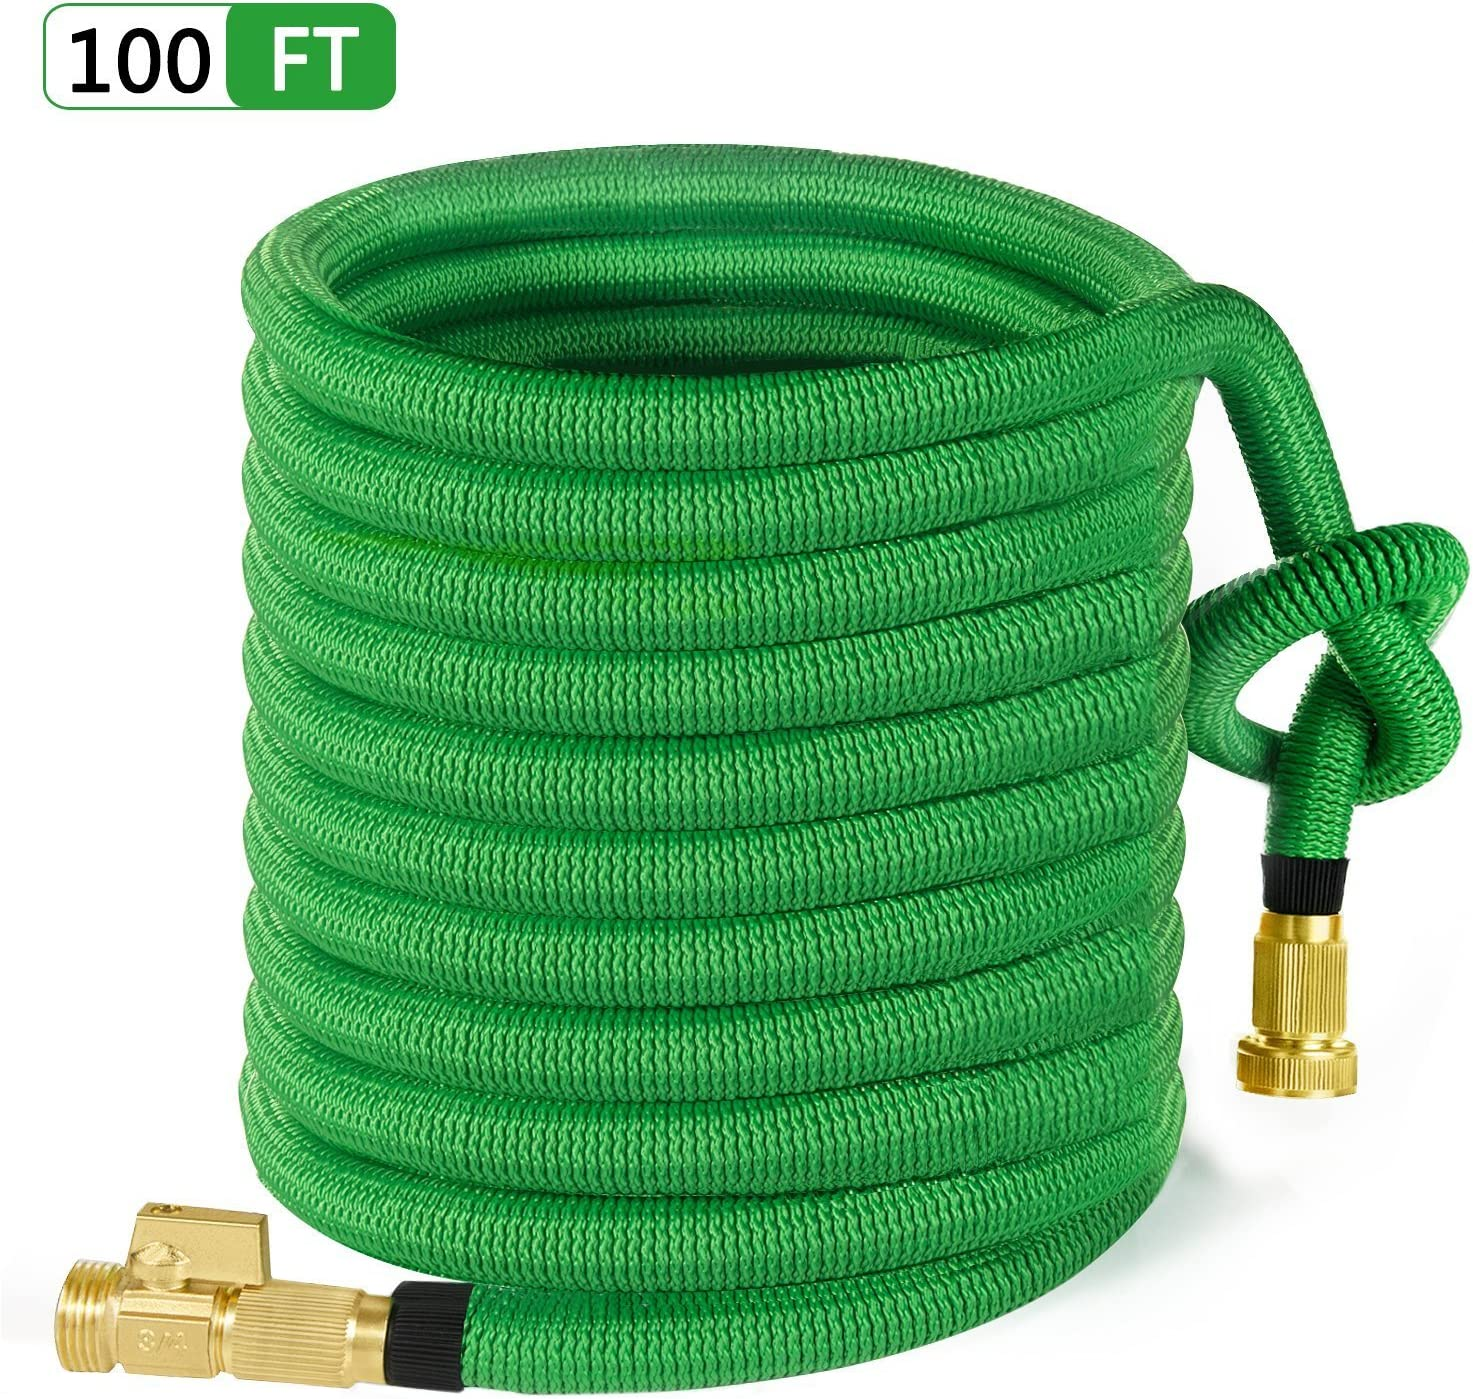 "MoonLa 100ft Garden Hose, All New Expandable Water Hose with 3/4"" Solid Brass Fittings, Extra Strength Fabric - Flexible Expanding Hose with Free Storage Bag"